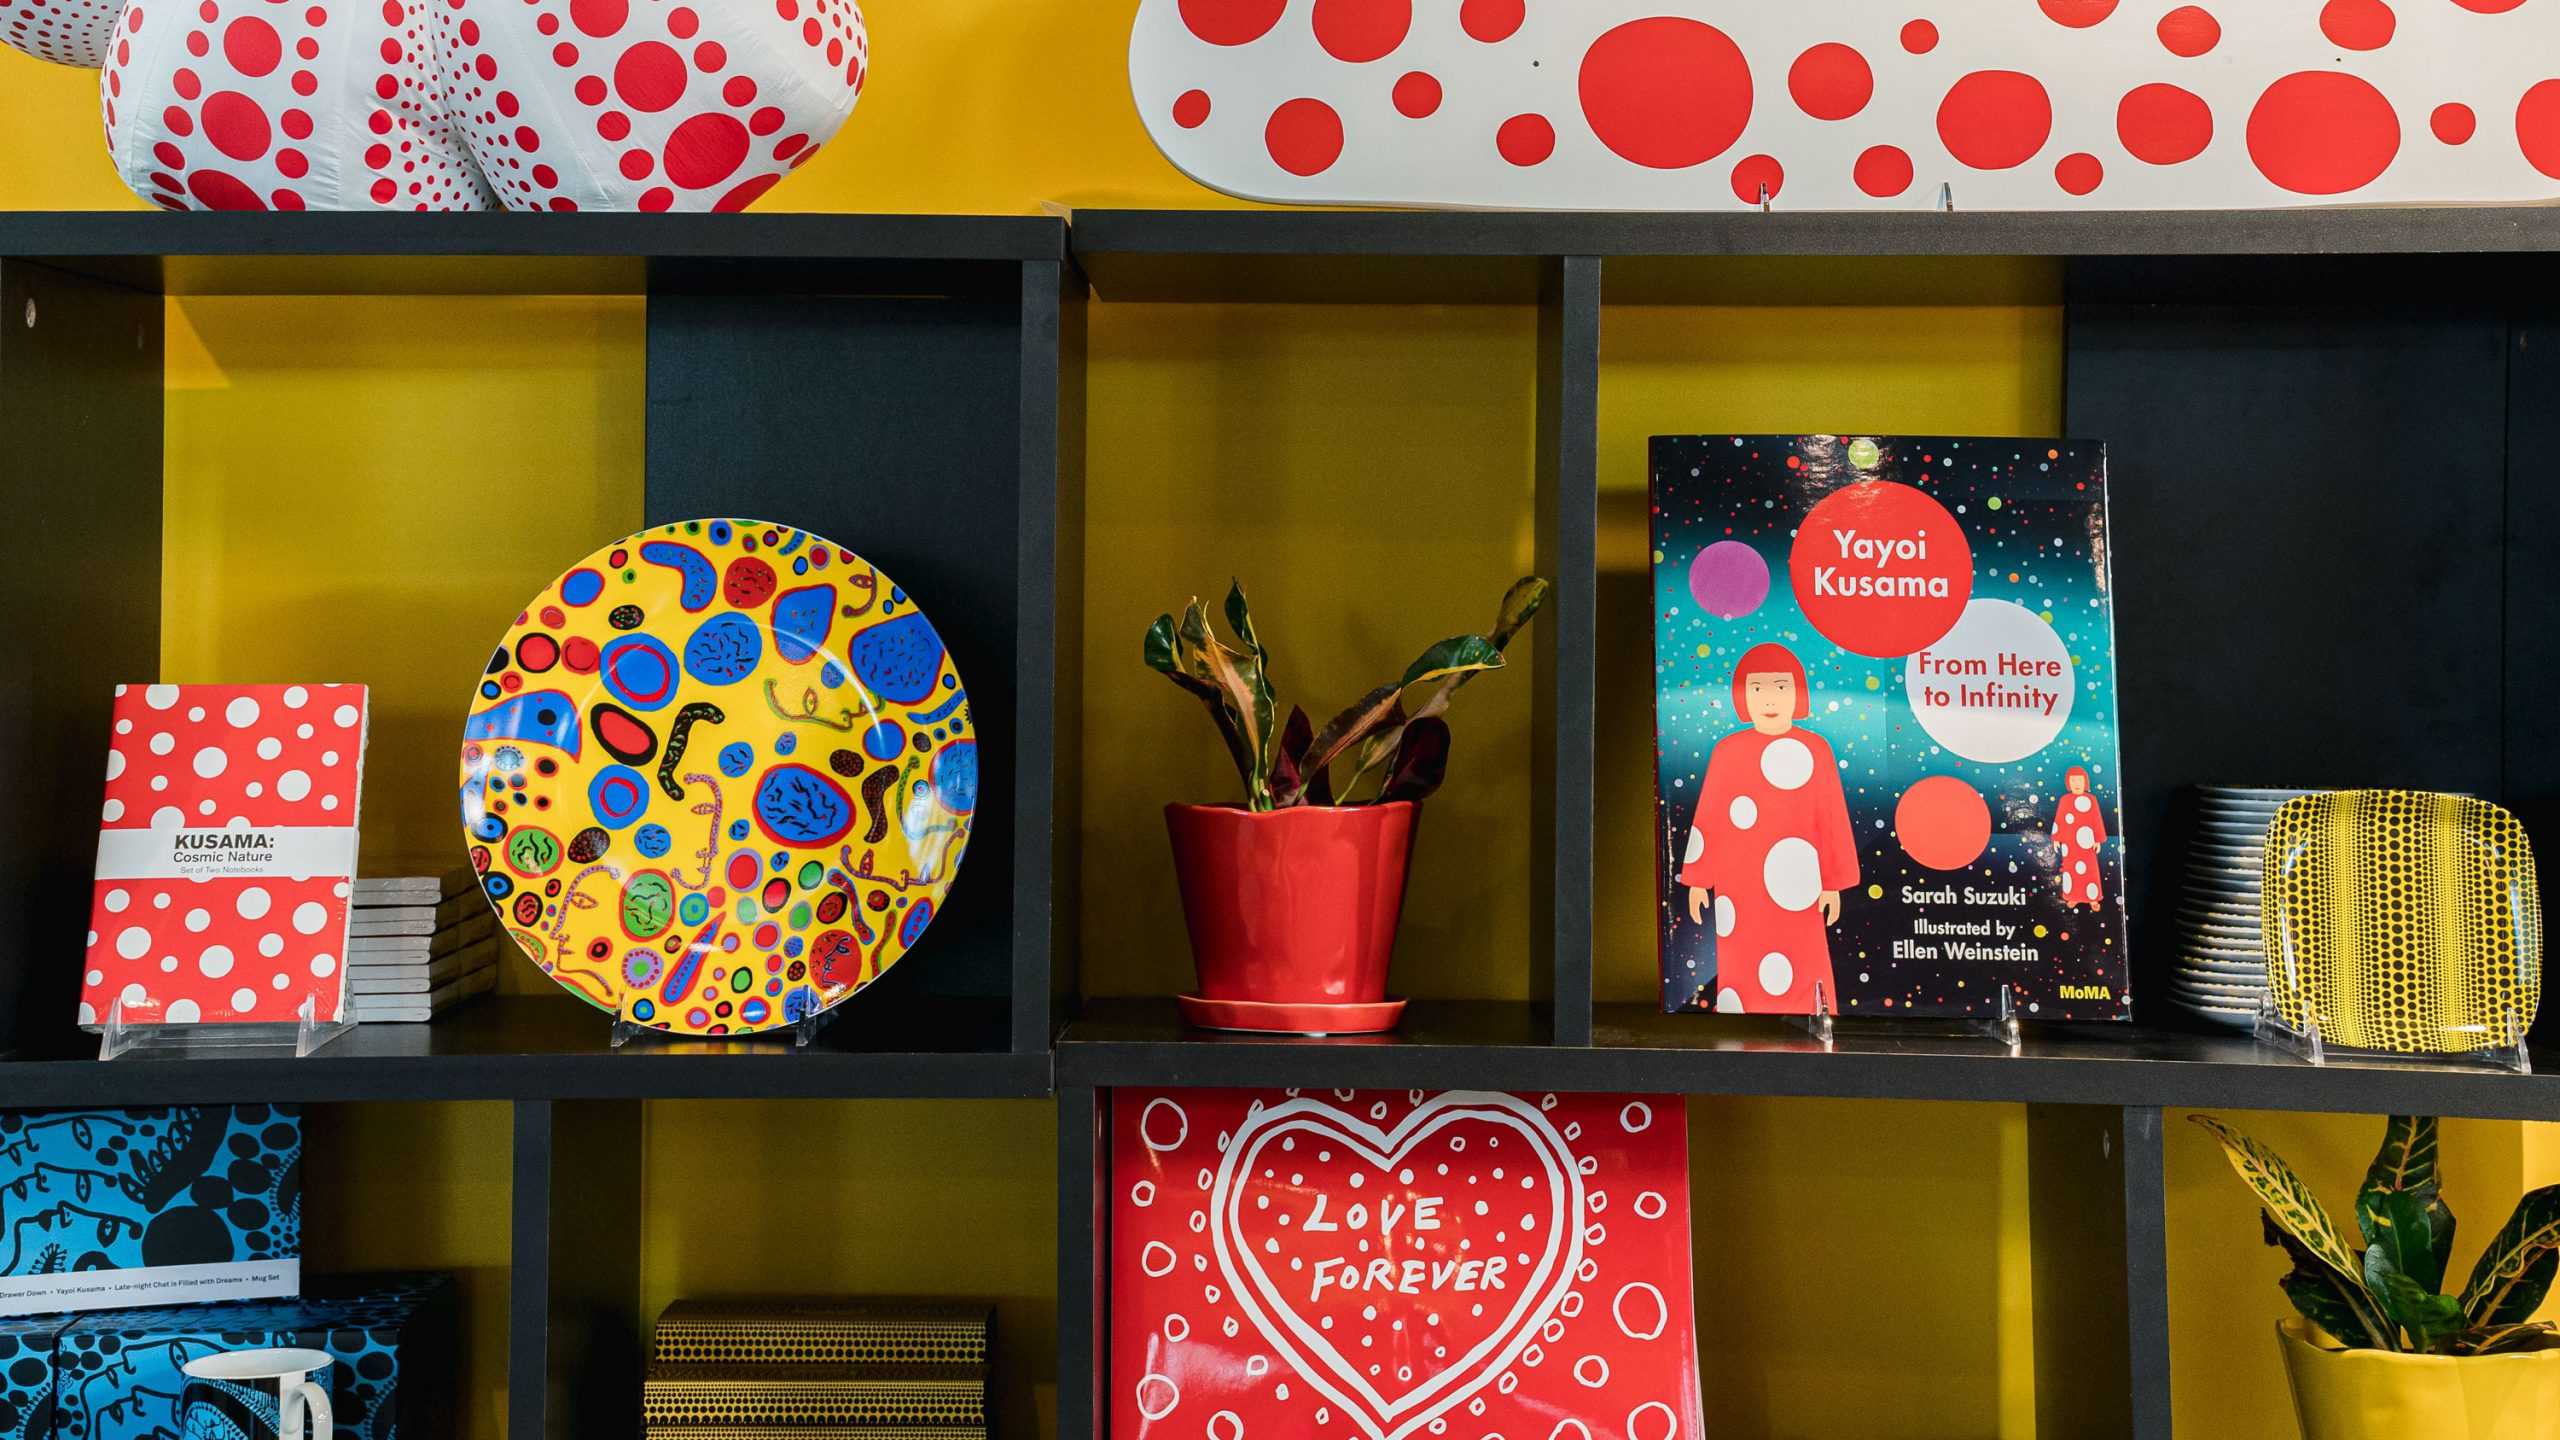 A variety of plates, books, notebooks, and more merchandise from the KUSAMA: Cosmic Nature exhibition, many featuring the art of Yayoi Kusama.